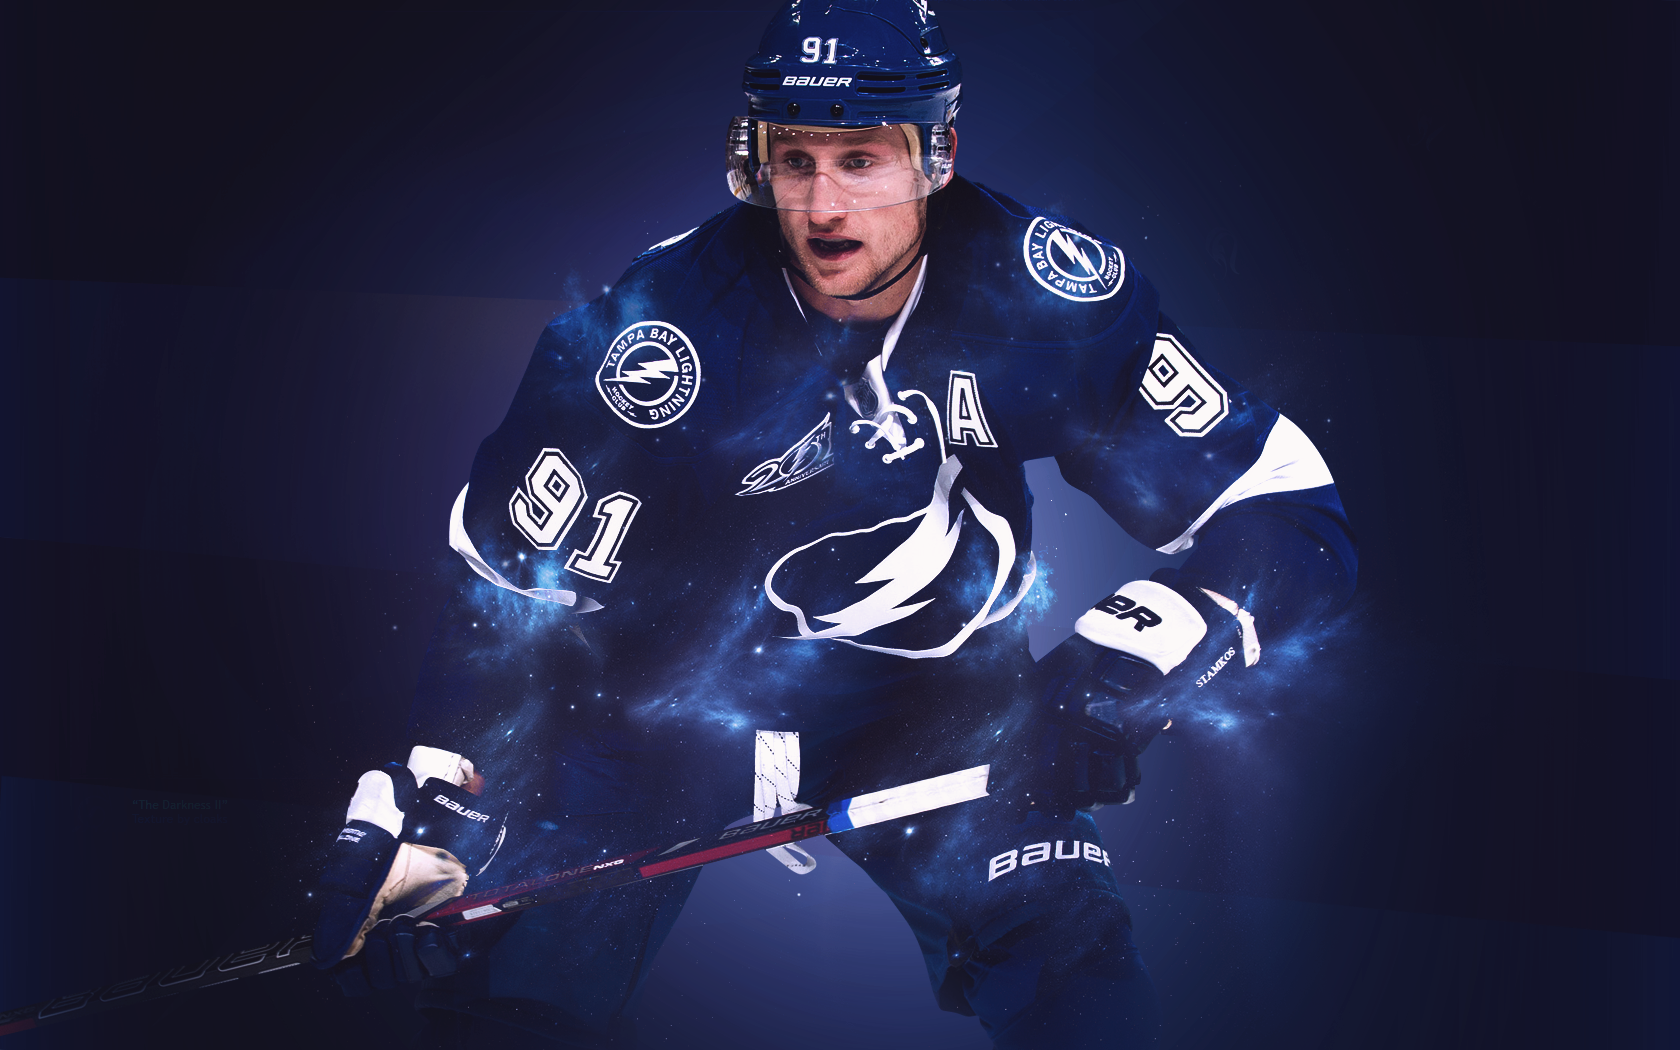 Steven Stamkos Tampa Bay Lightning Wallpaper 1680x1050